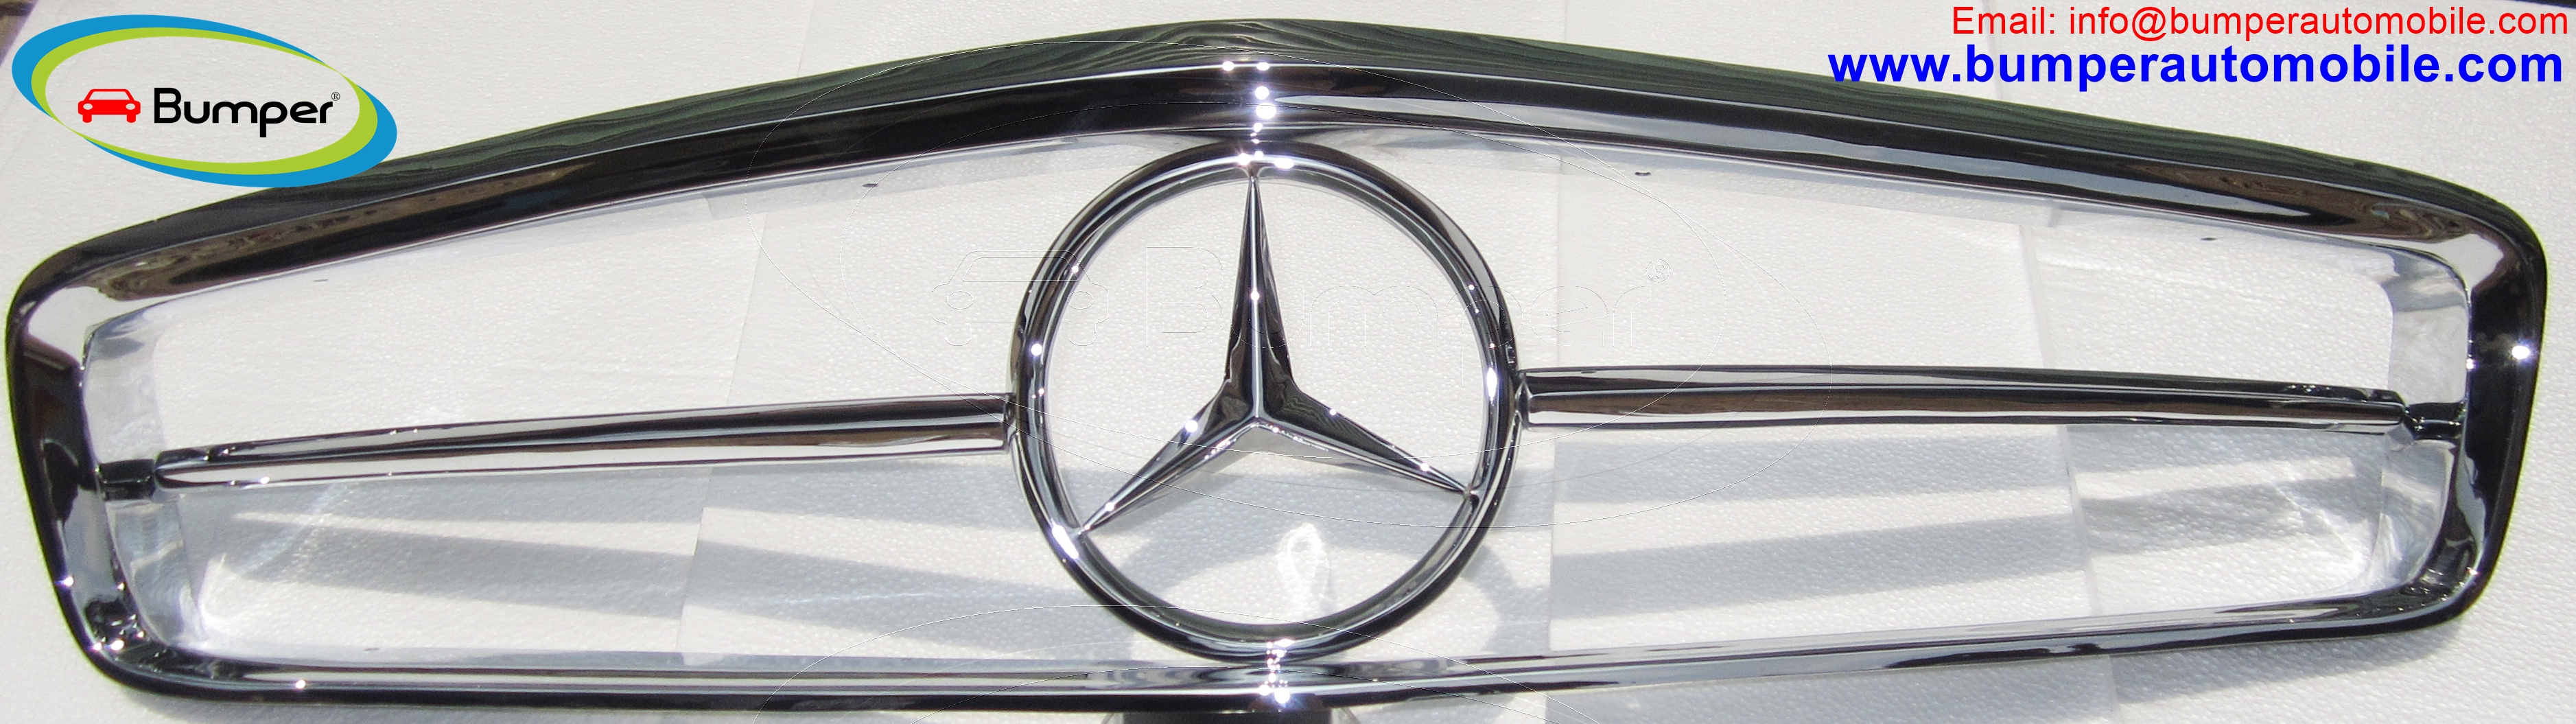 Mercedes W113 grille years (1963-1971) stainless steel